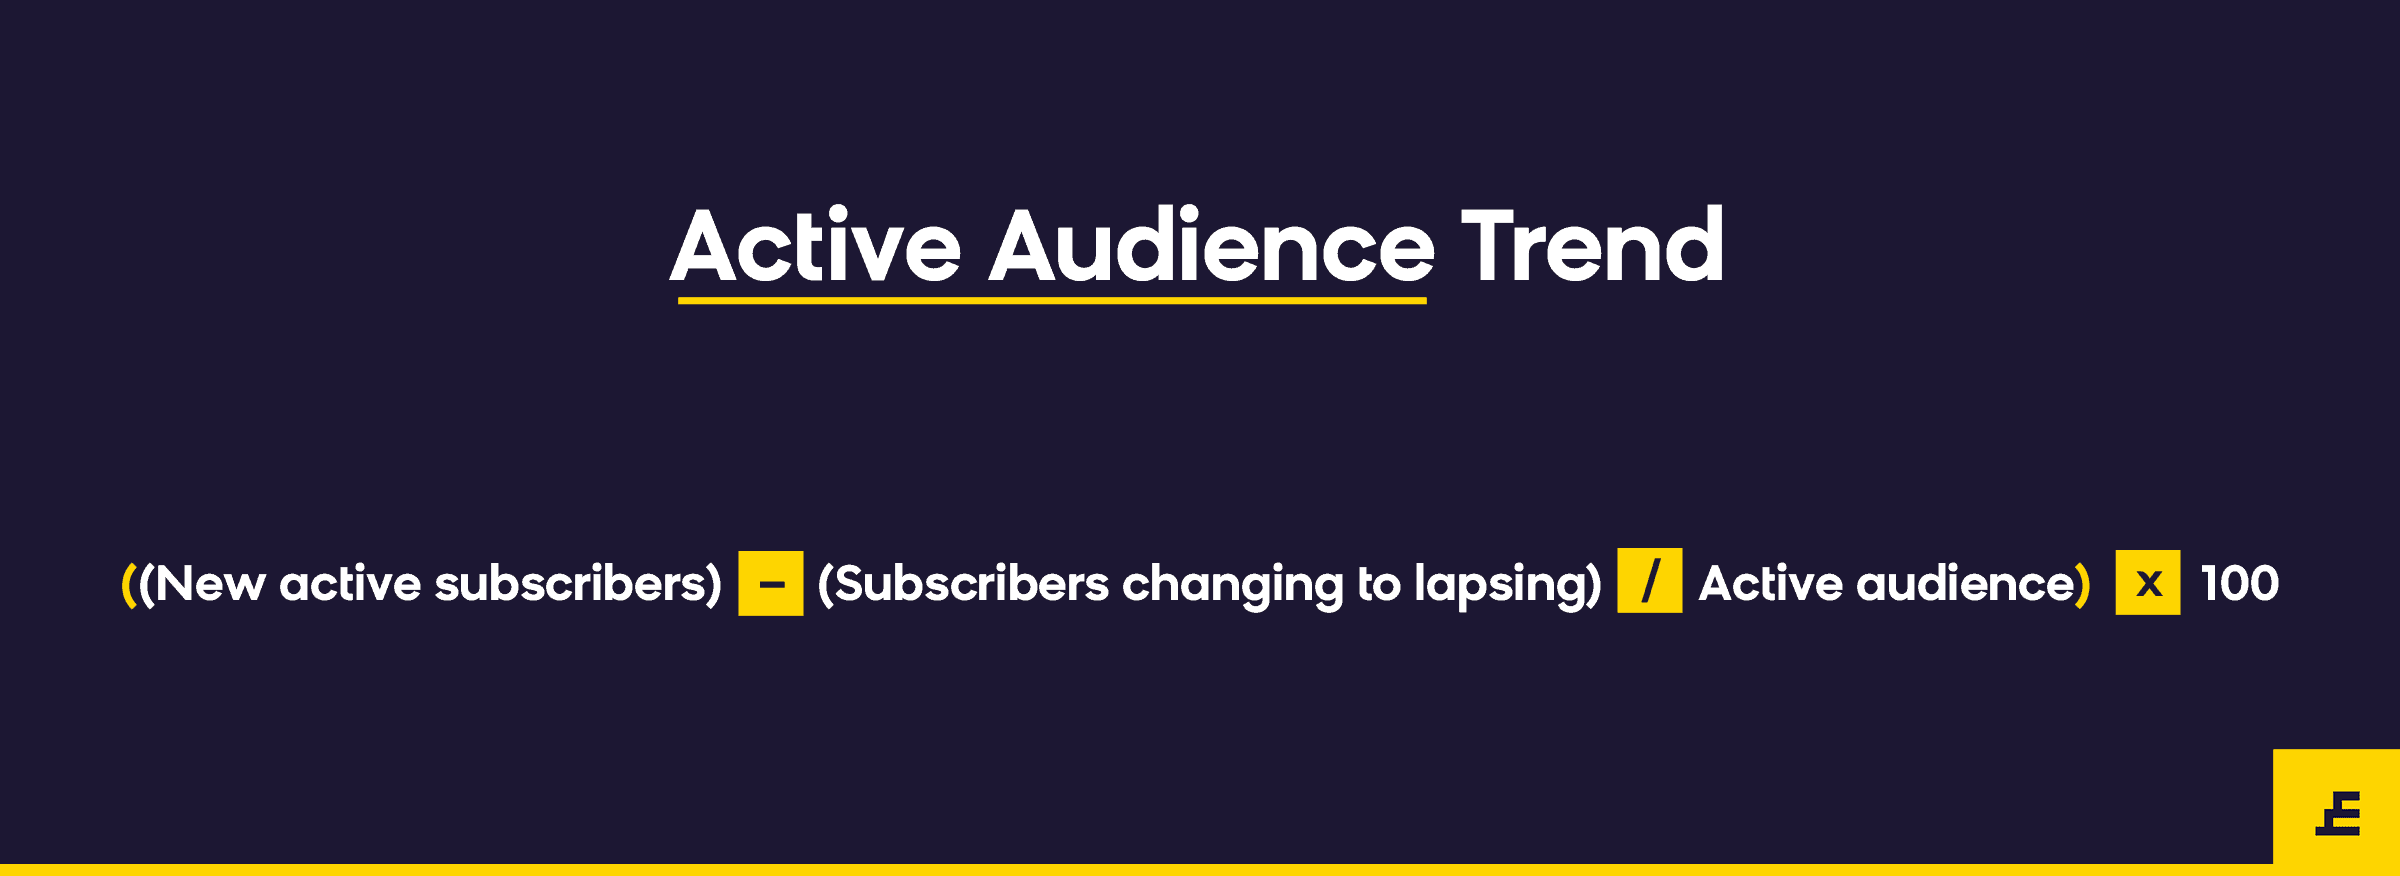 email marketing metric - active audience trend